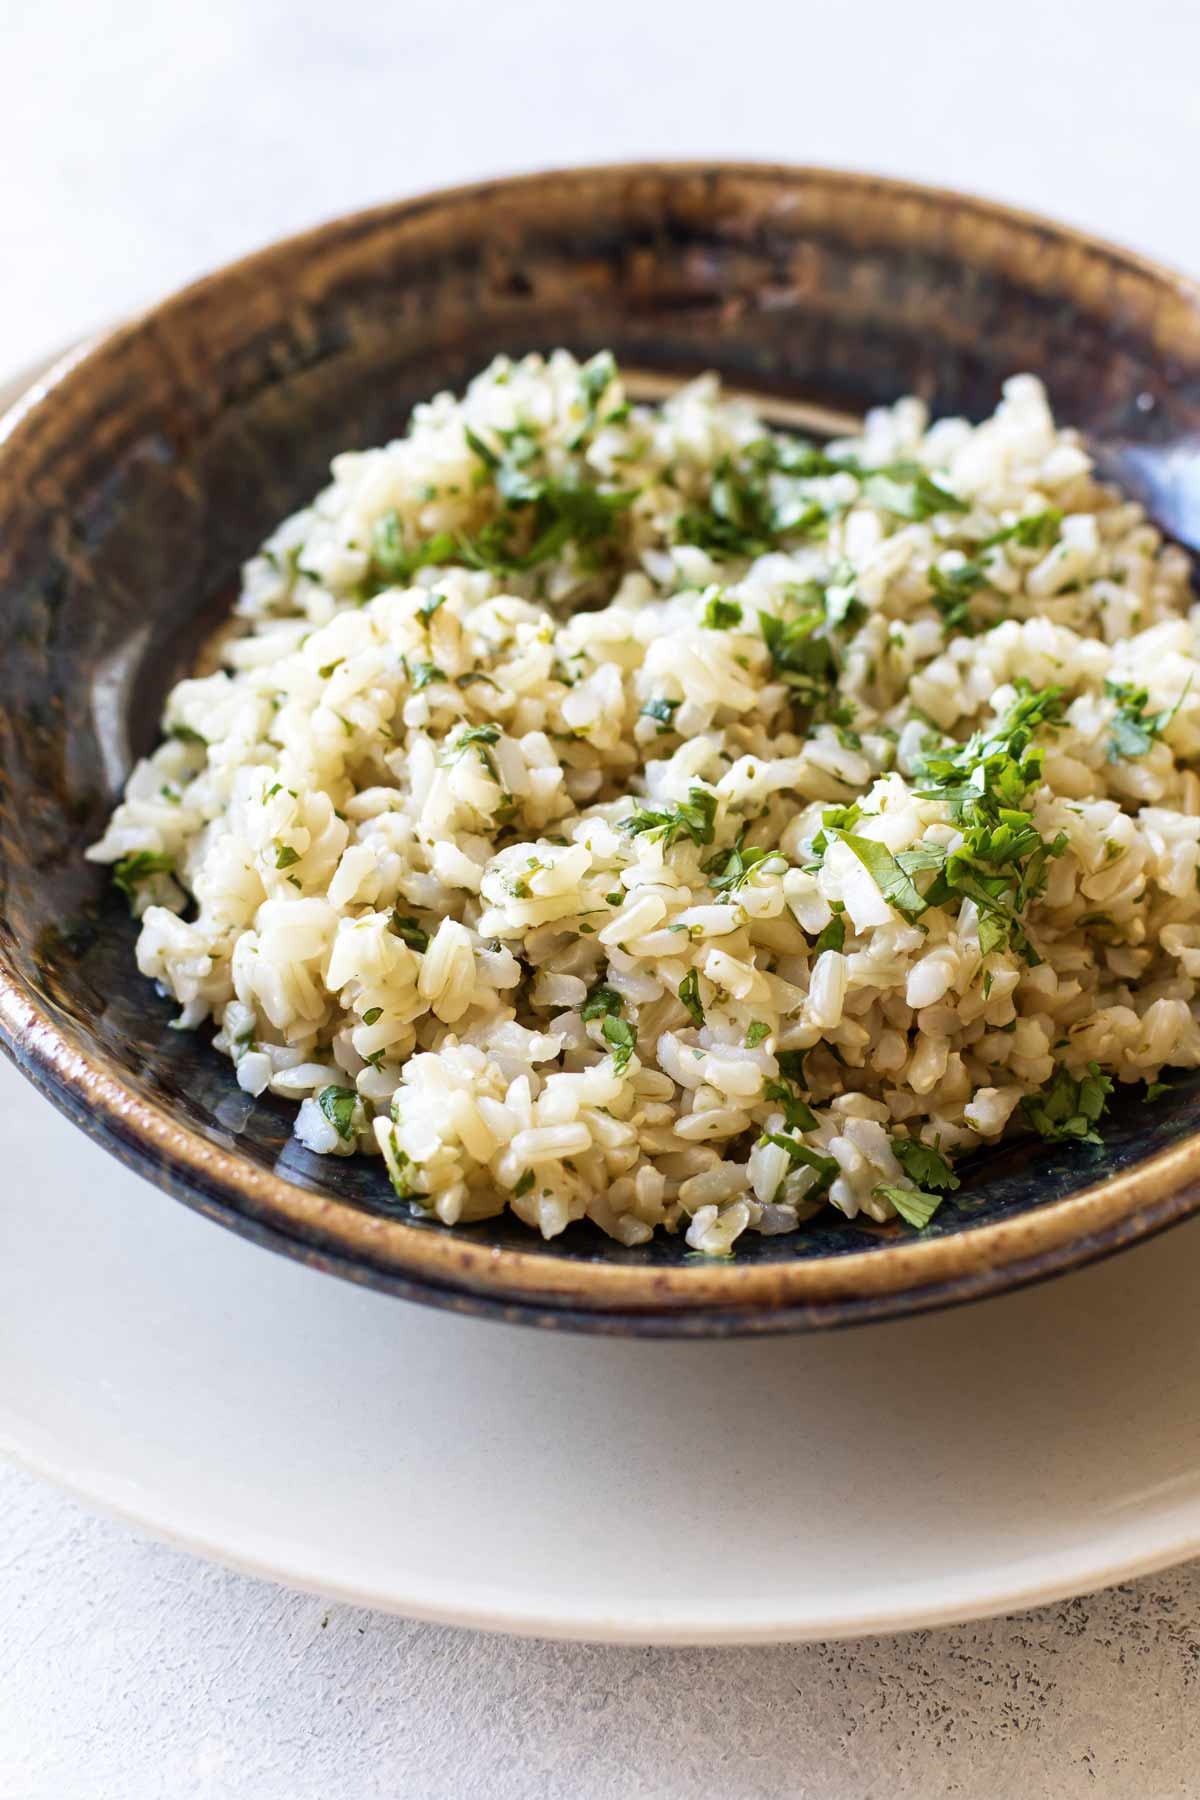 photo of a bowl of cilantro-lime rice